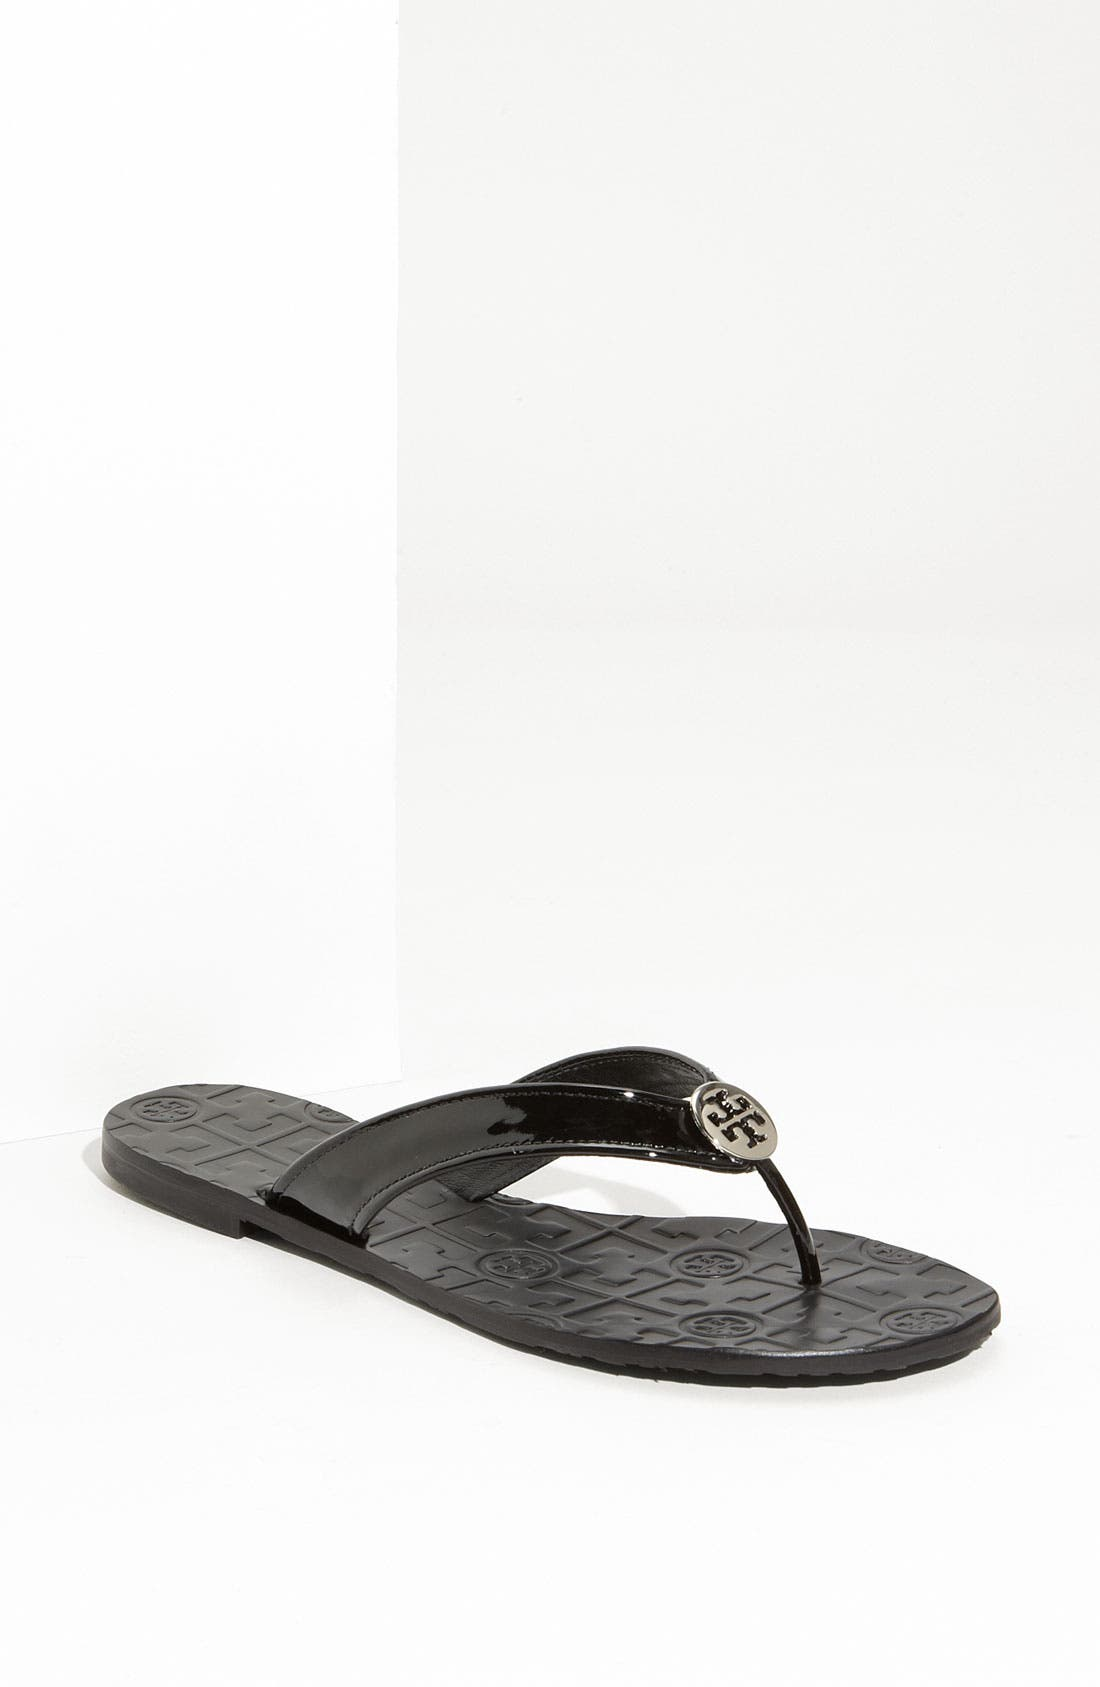 Main Image - Tory Burch 'Thora' Flip Flop (Women)